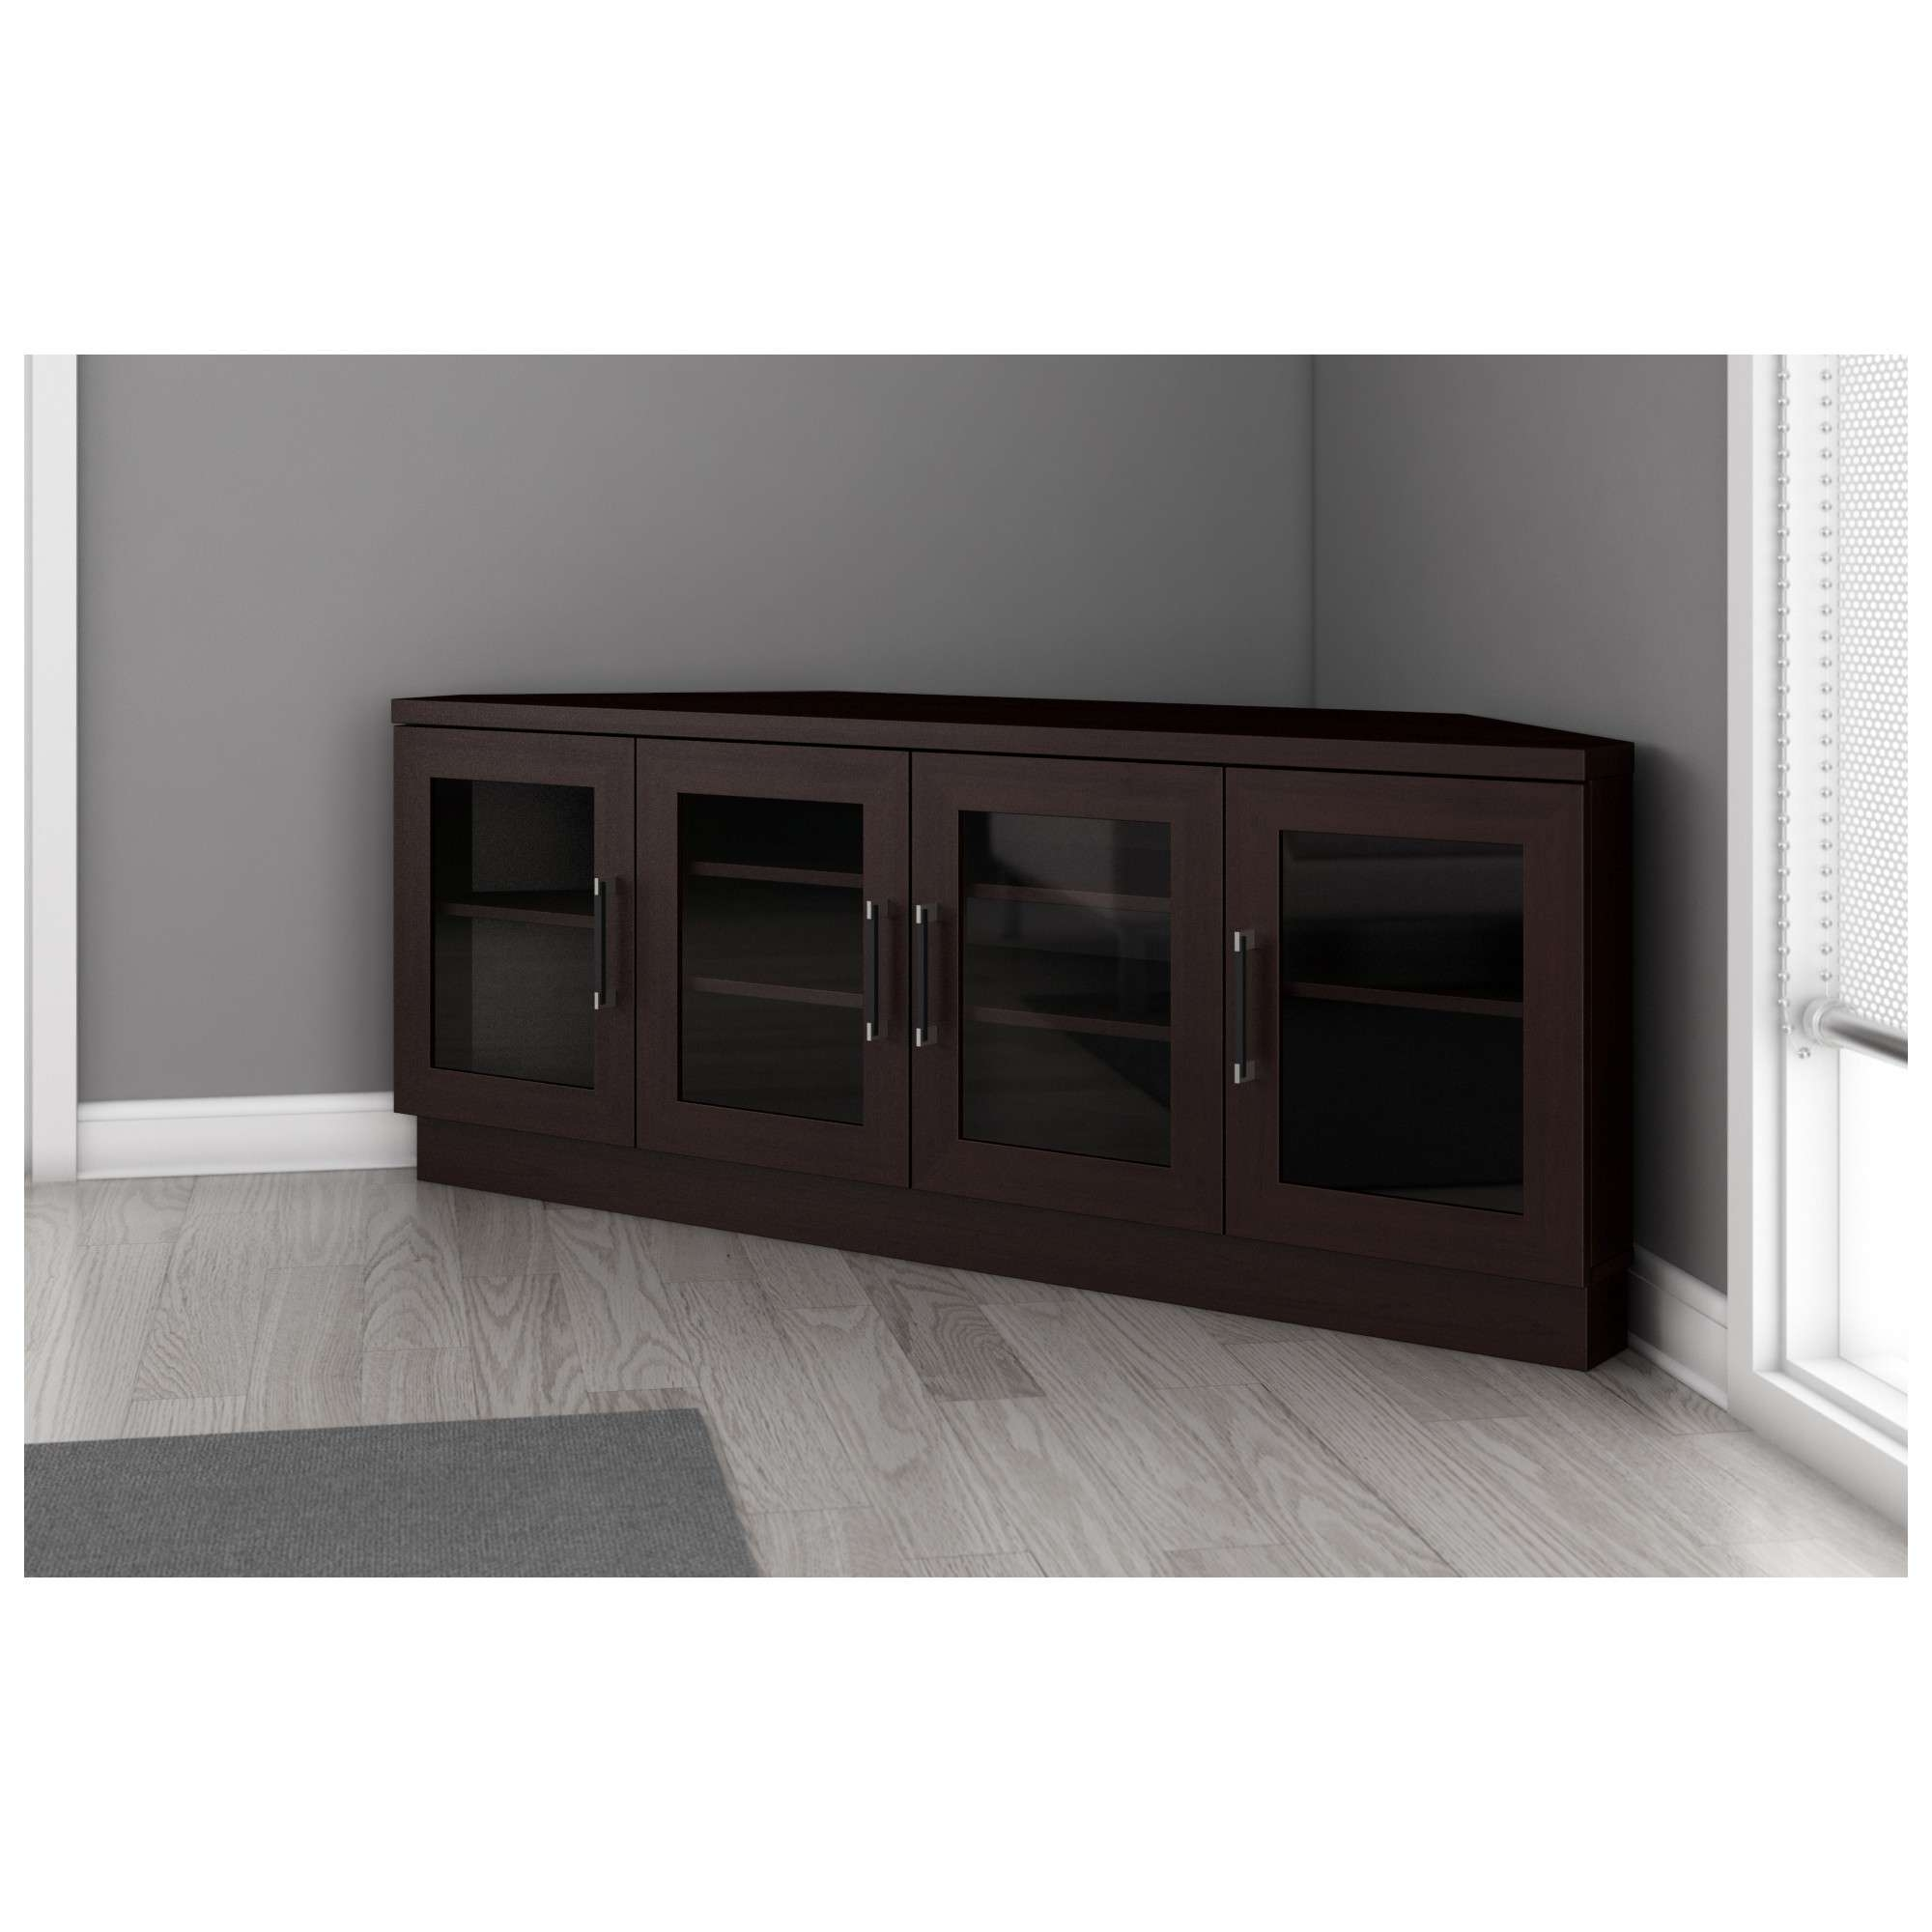 "Furnitech Ft60Cccw 60"" Tv Stand Contemporary Corner Media Cabinet For Modern Corner Tv Stands (View 8 of 20)"